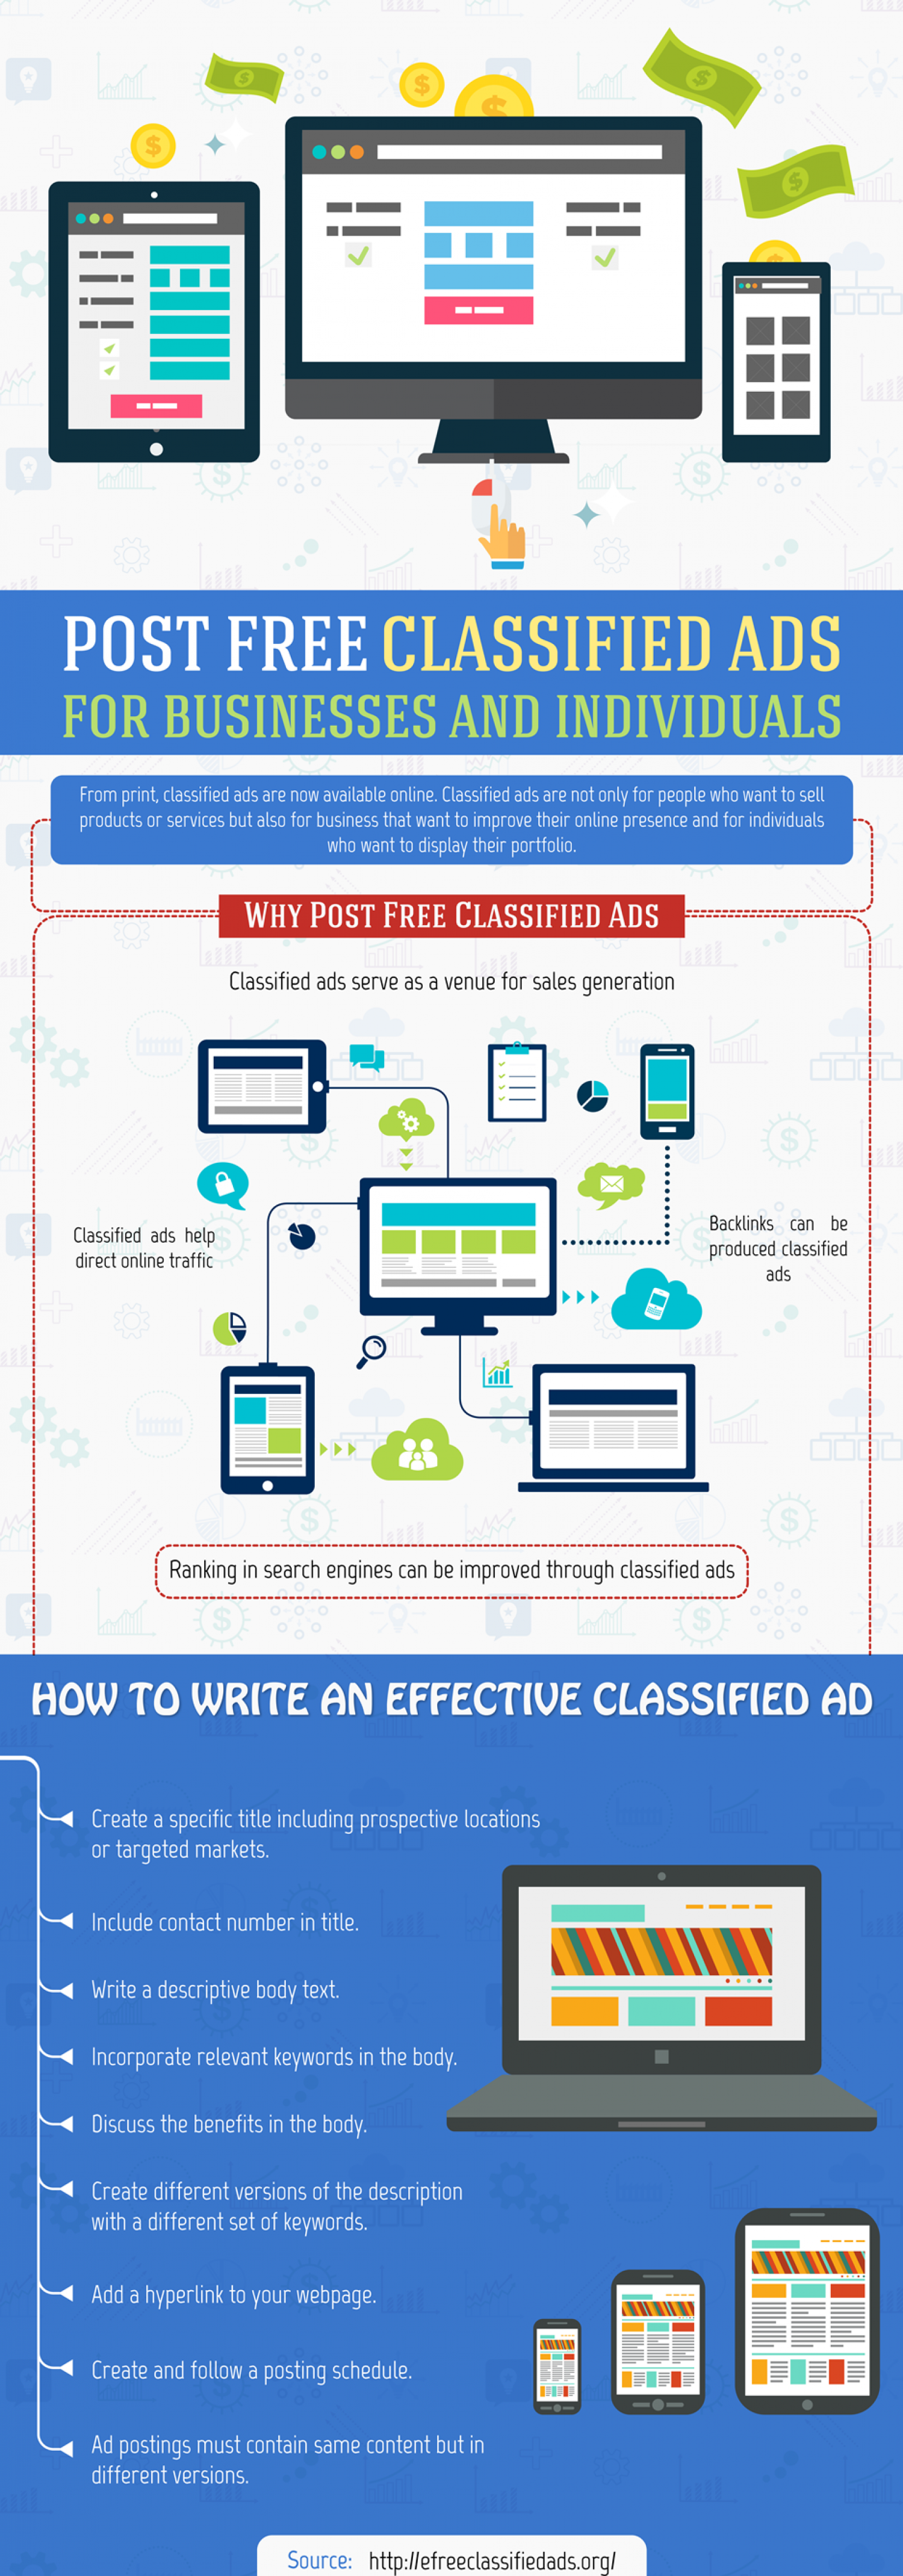 Free classified ads Infographic